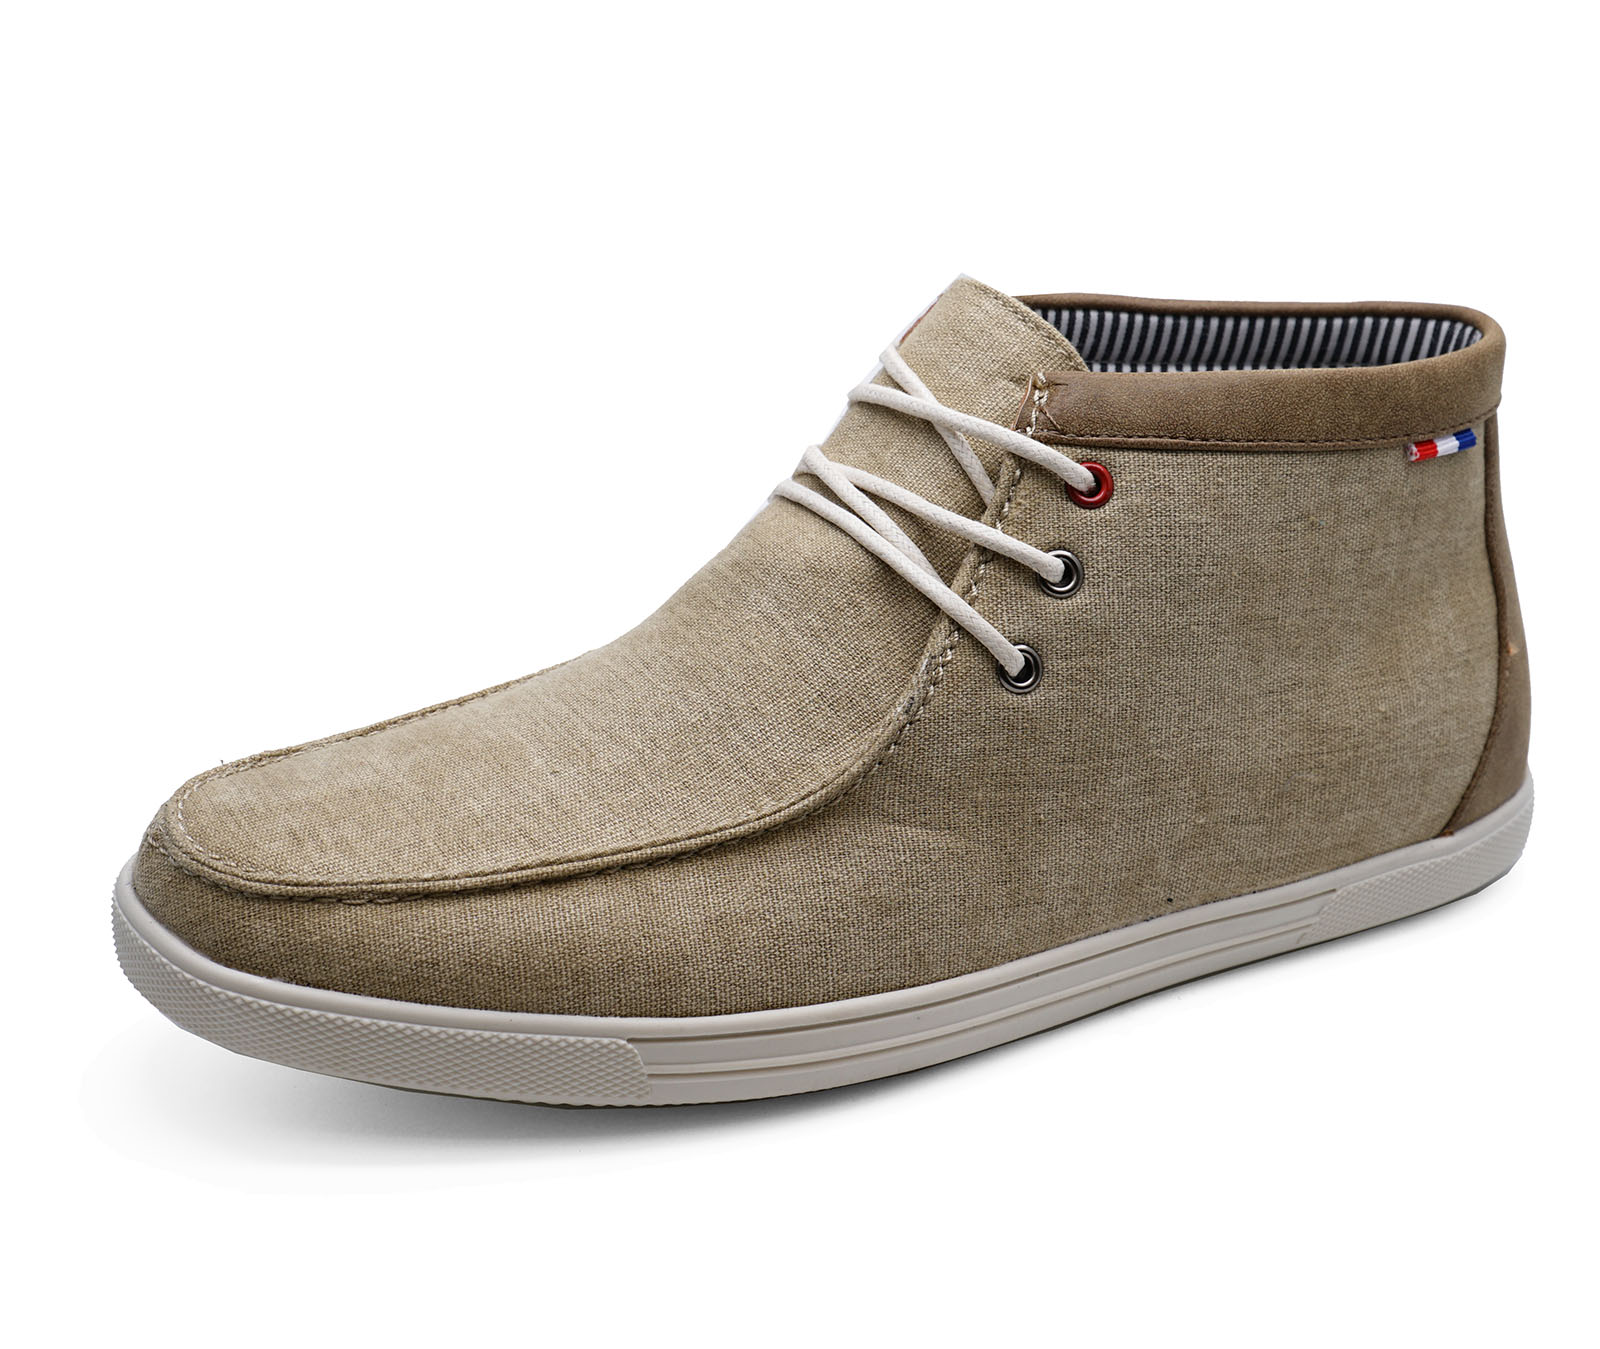 MENS-BEIGE-CANVAS-CASUAL-LACE-UP-ANKLE-COMFY-PLIMSOLL-HI-TOP-BOOTS-SHOES-UK-6-11